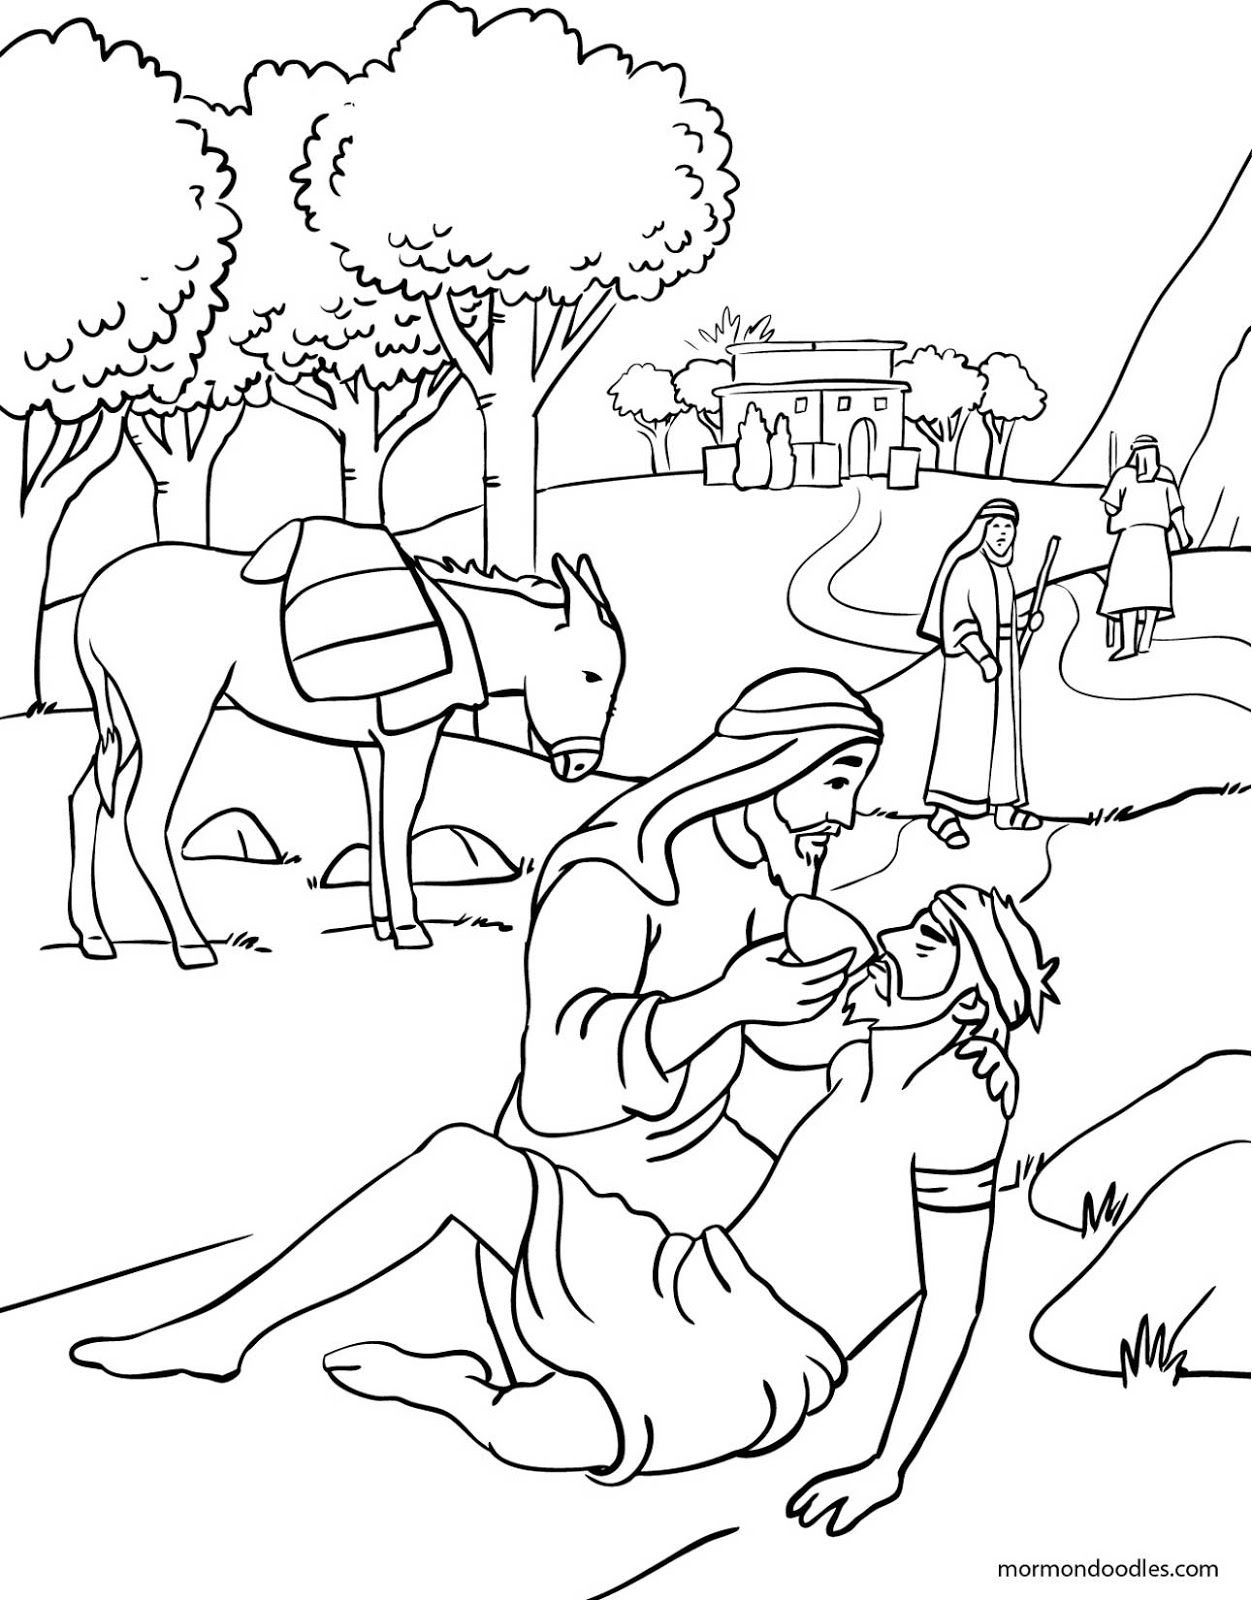 mormon doodles the good samaritan coloring page - Good Samaritan Coloring Pages